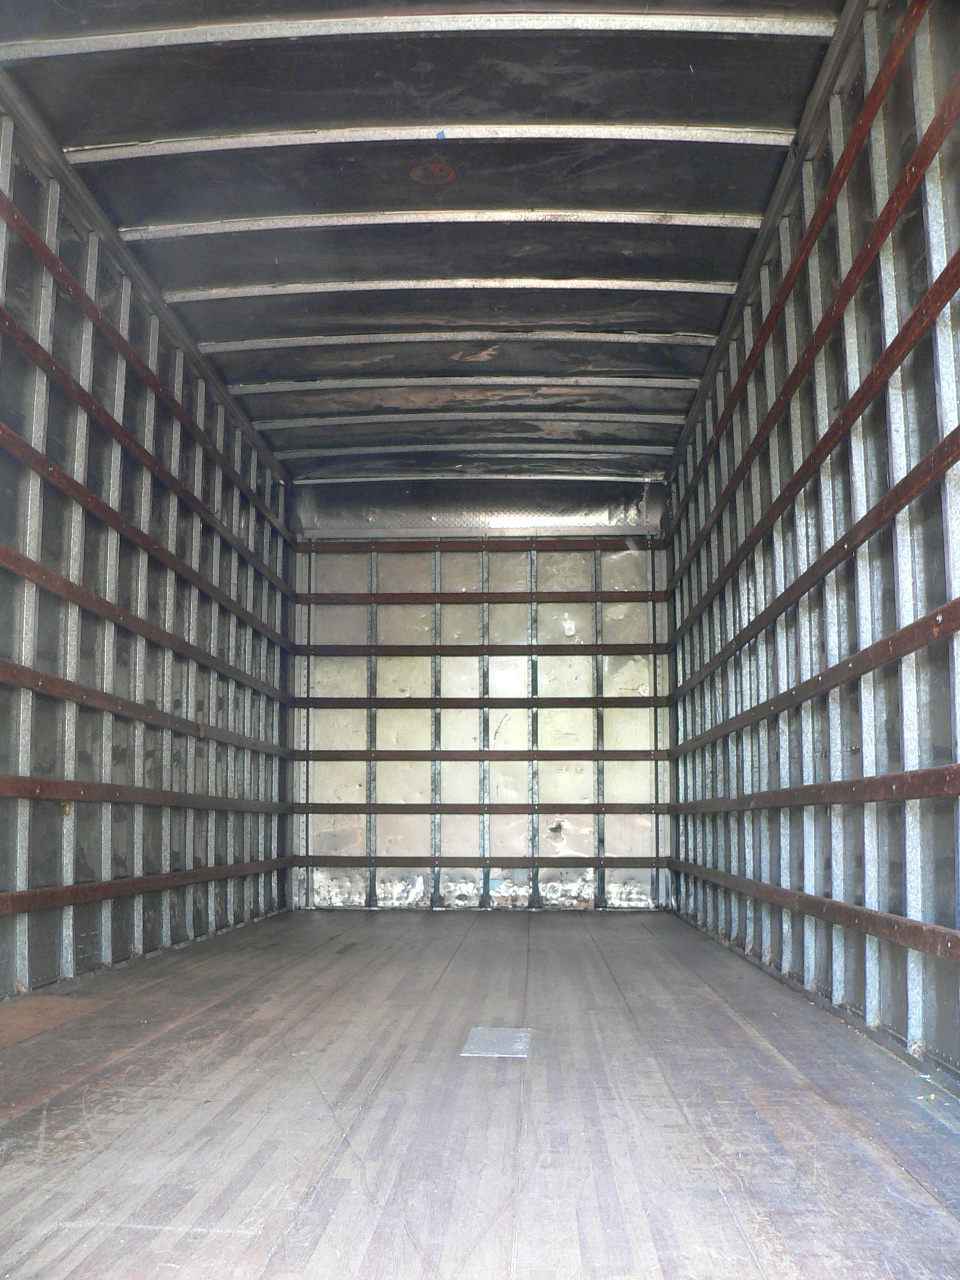 Used Truck Body In 25 Feet 26 Feet 27 Feet Or 28 Feet